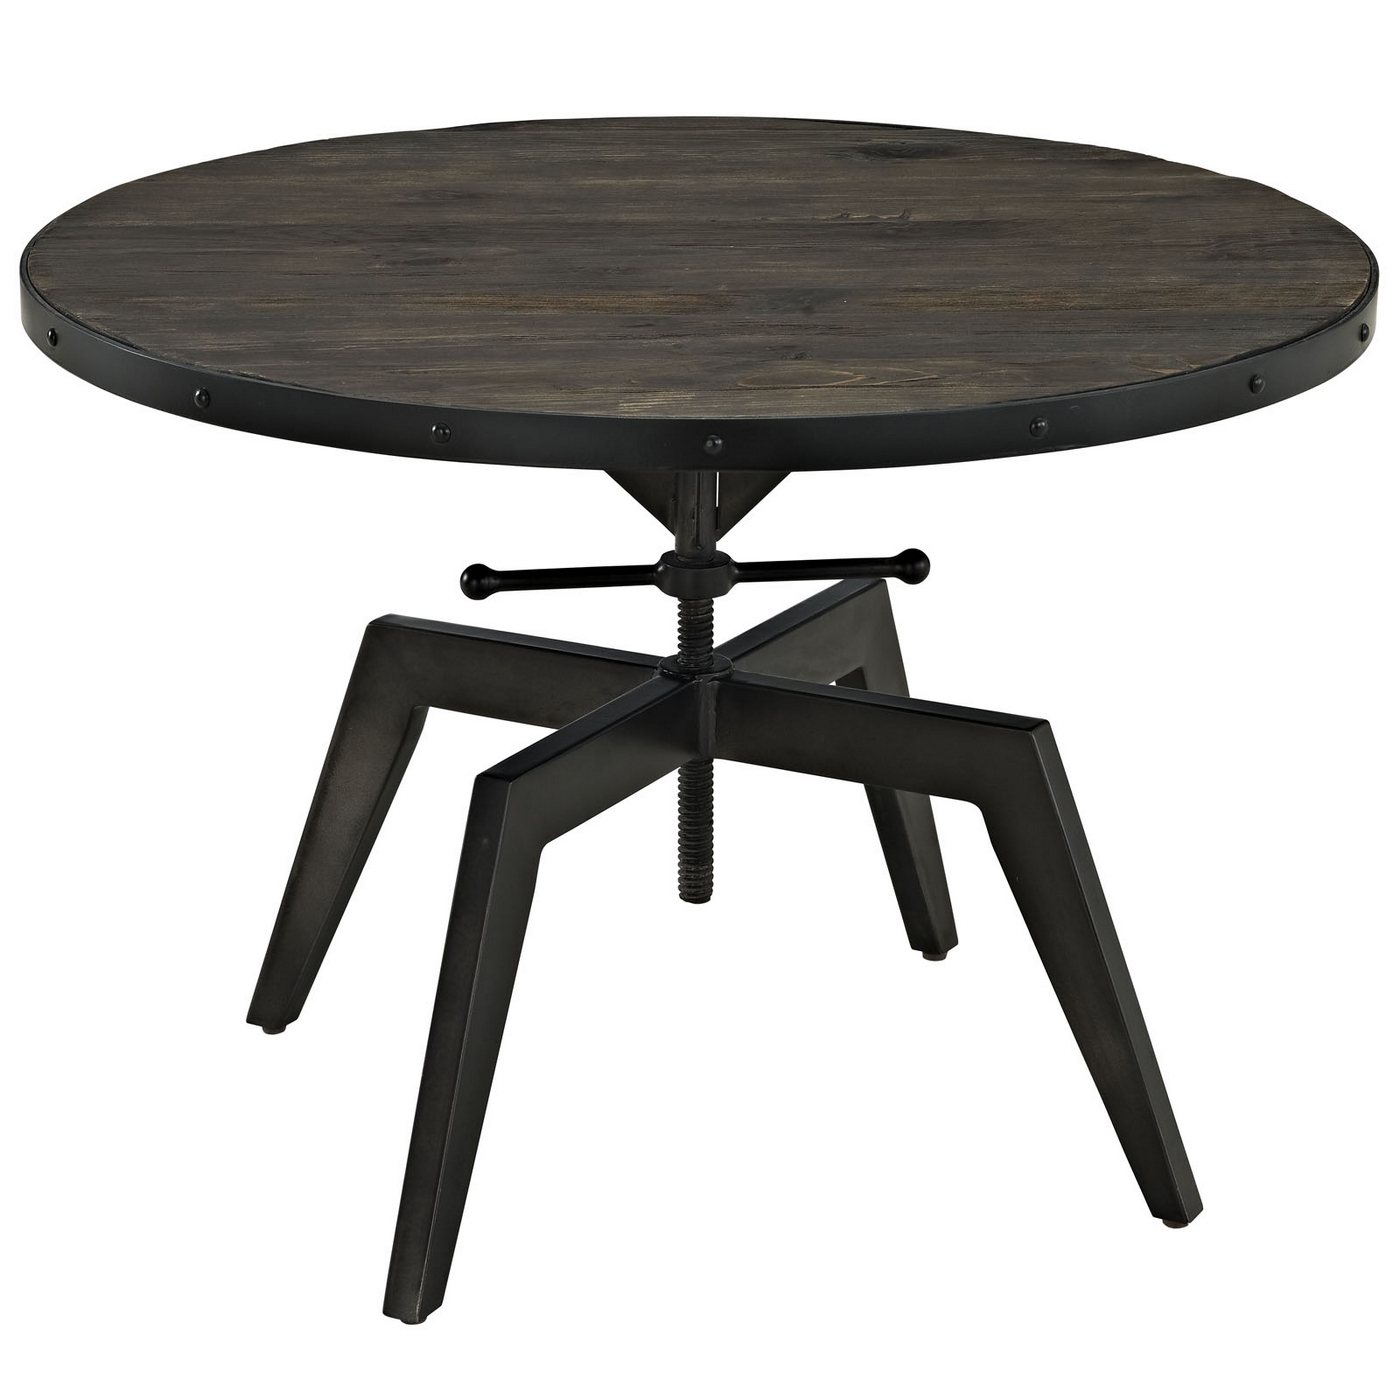 Grasp Industrial Round Pine Wood Coffee Table With Metal